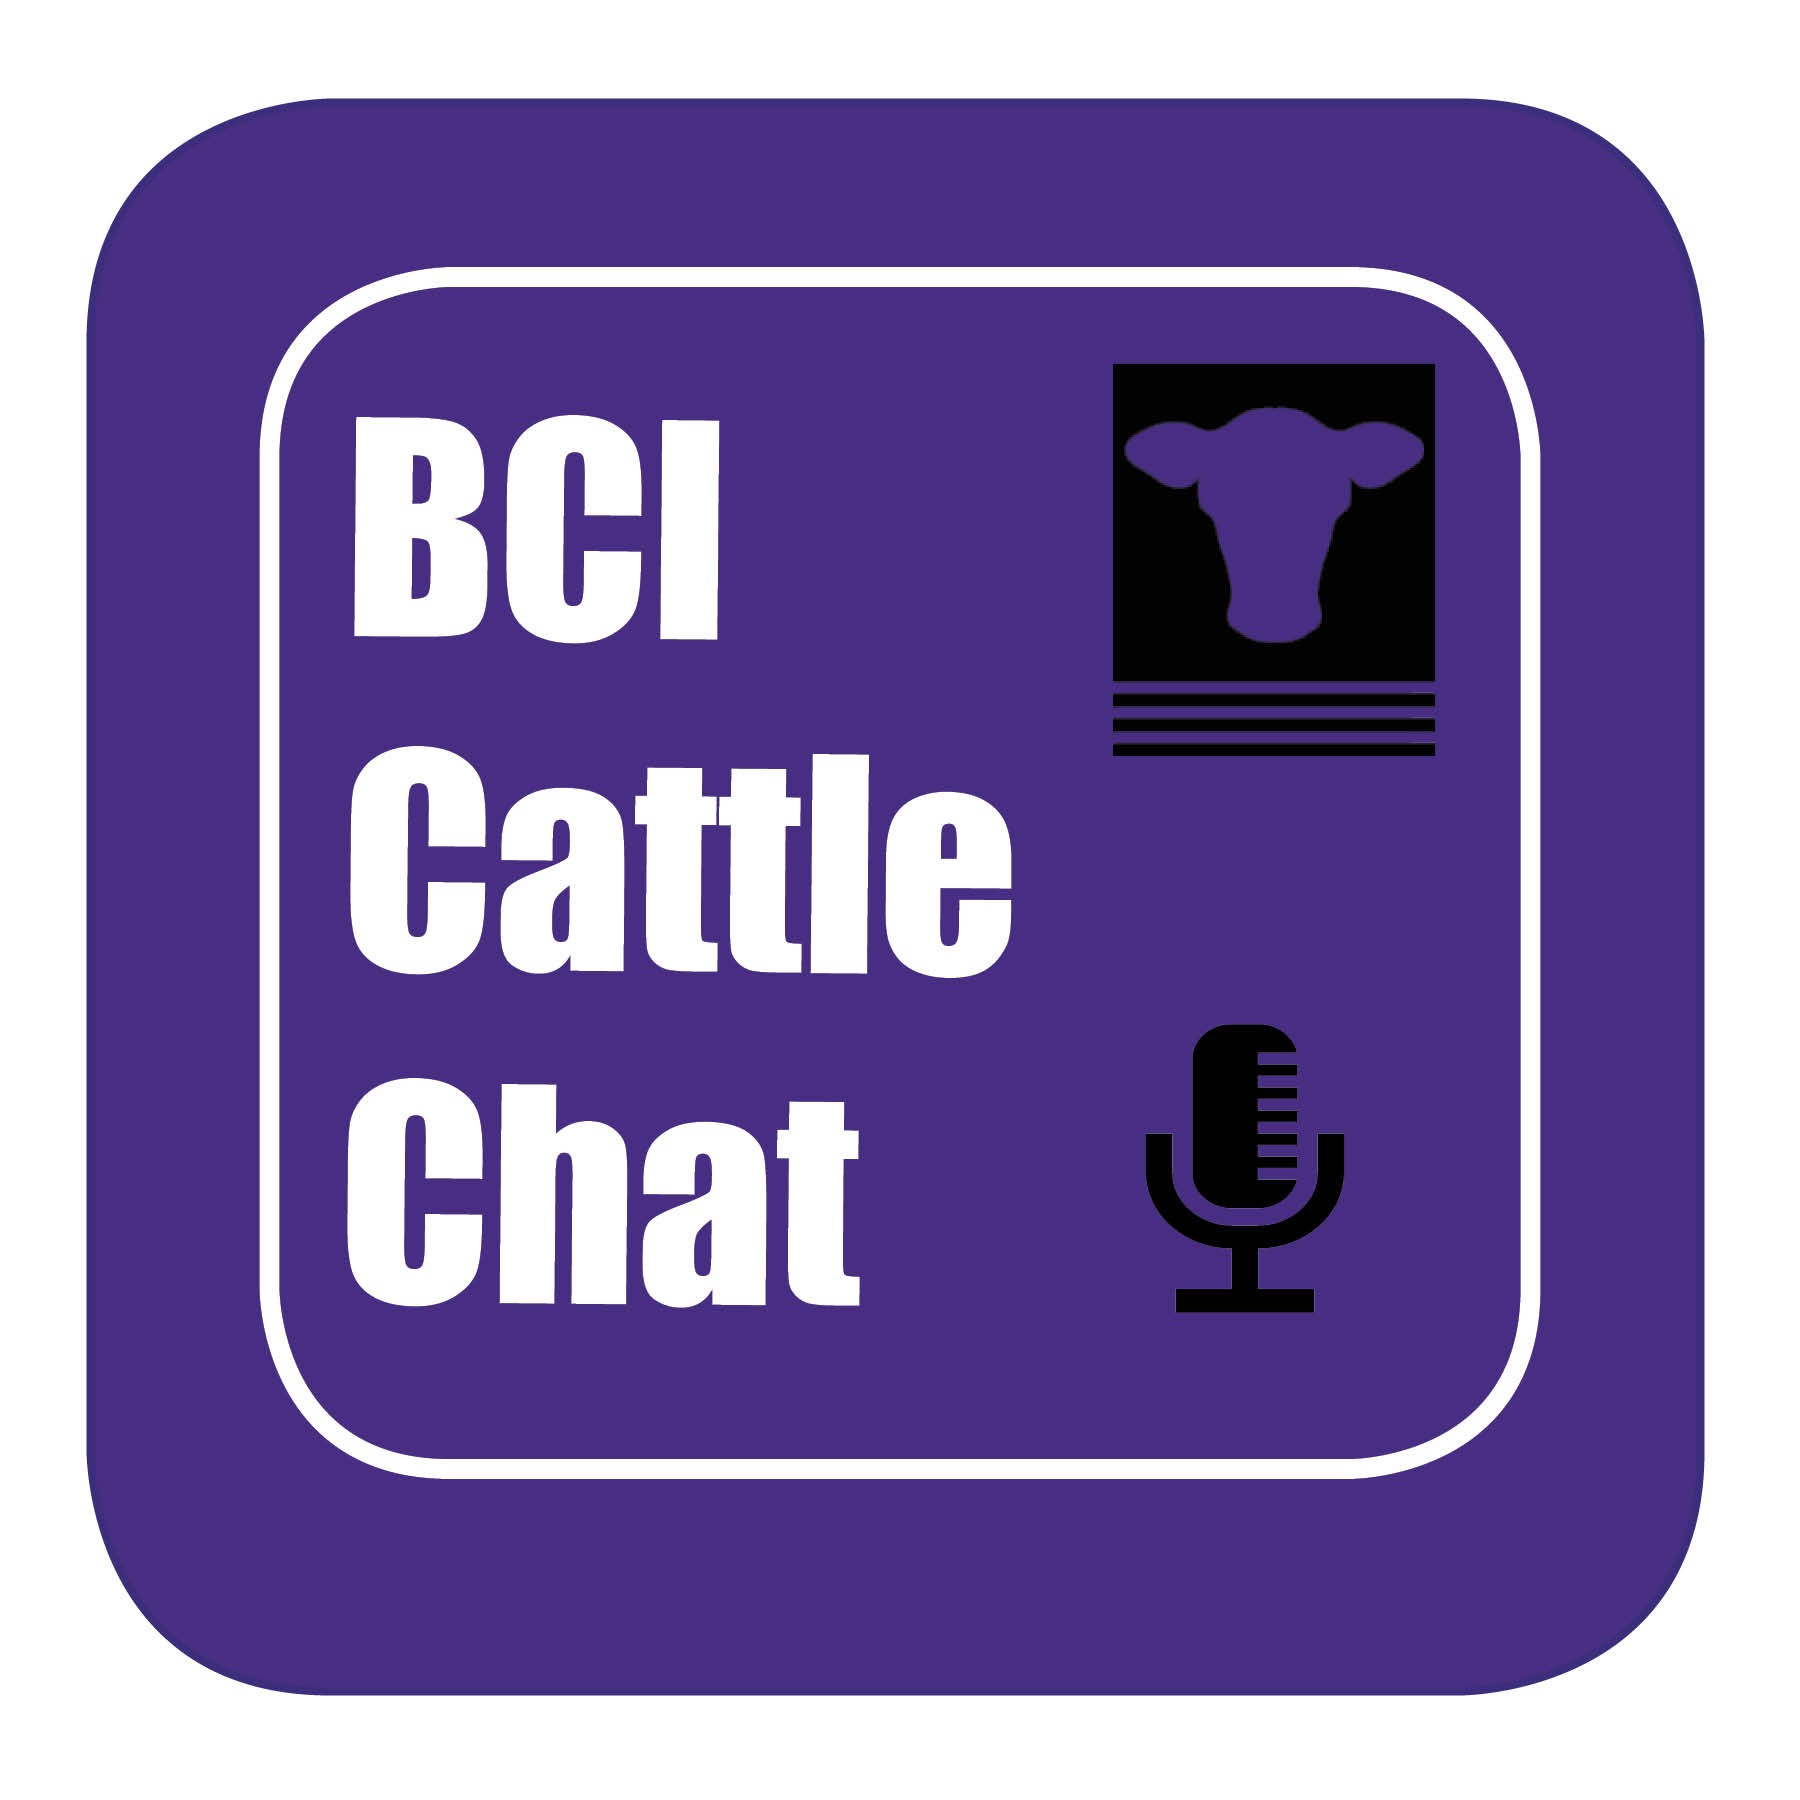 BCI Cattle Chat - Episode 17